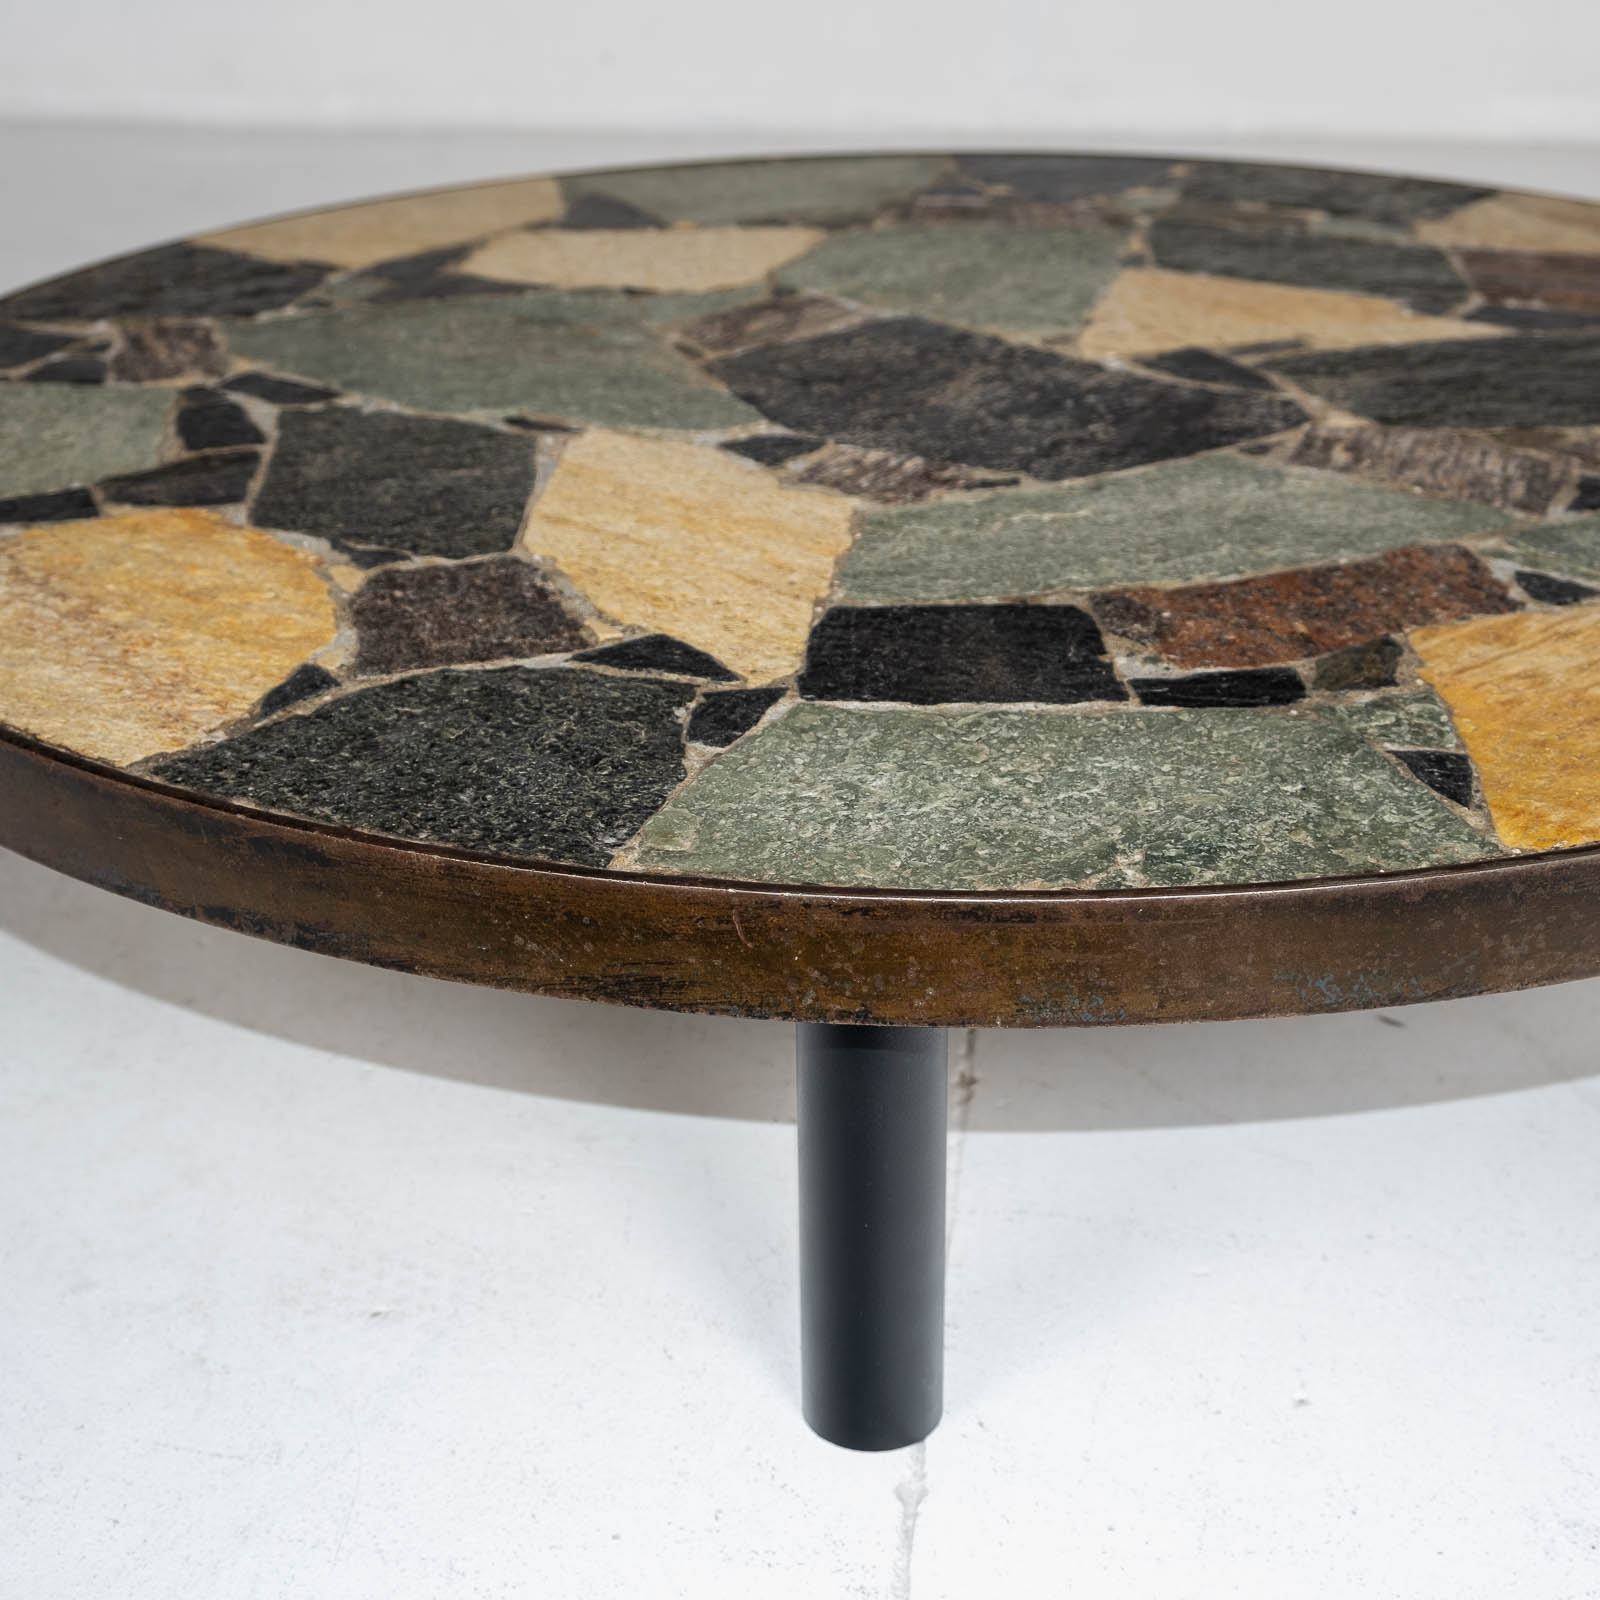 Circular Coffee Table In The Style Of Paul Kingma With Mosaic Slate Top And Metal Edge, 1970s, The Netherlands 00004